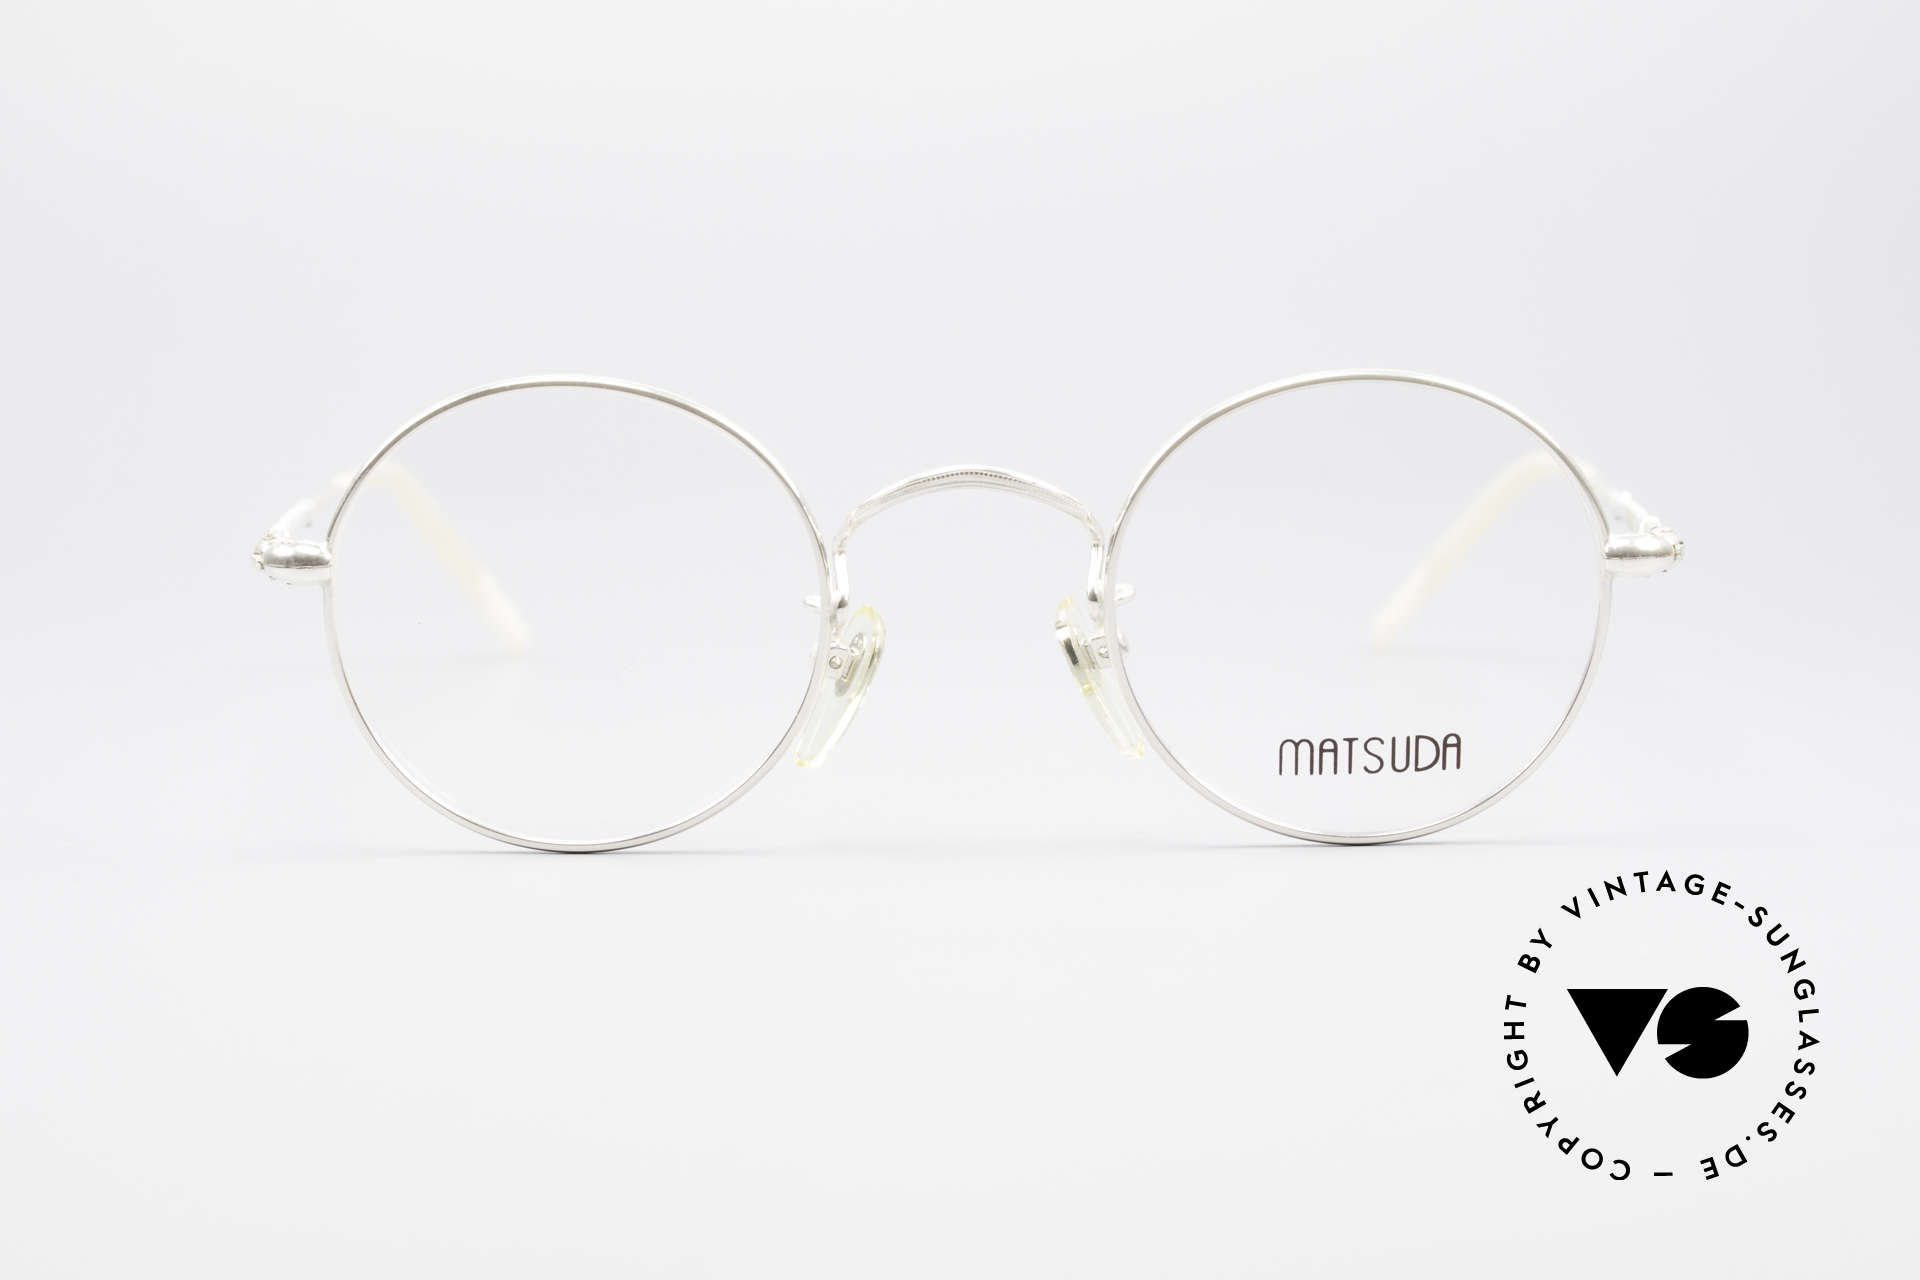 Matsuda 2872 Round 90's Designer Glasses, outstanding craftsmanship by the Japanese manufactory, Made for Men and Women